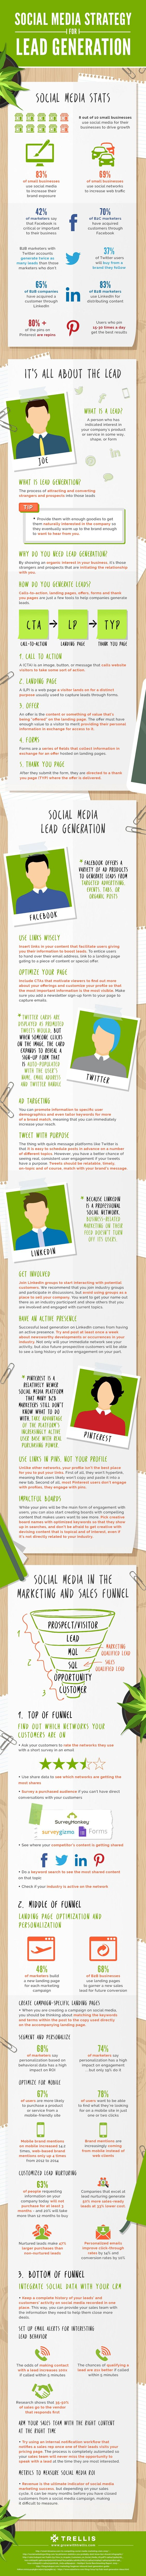 Social Media Strategy for Lead Generation [Infographic]   Social Media Today